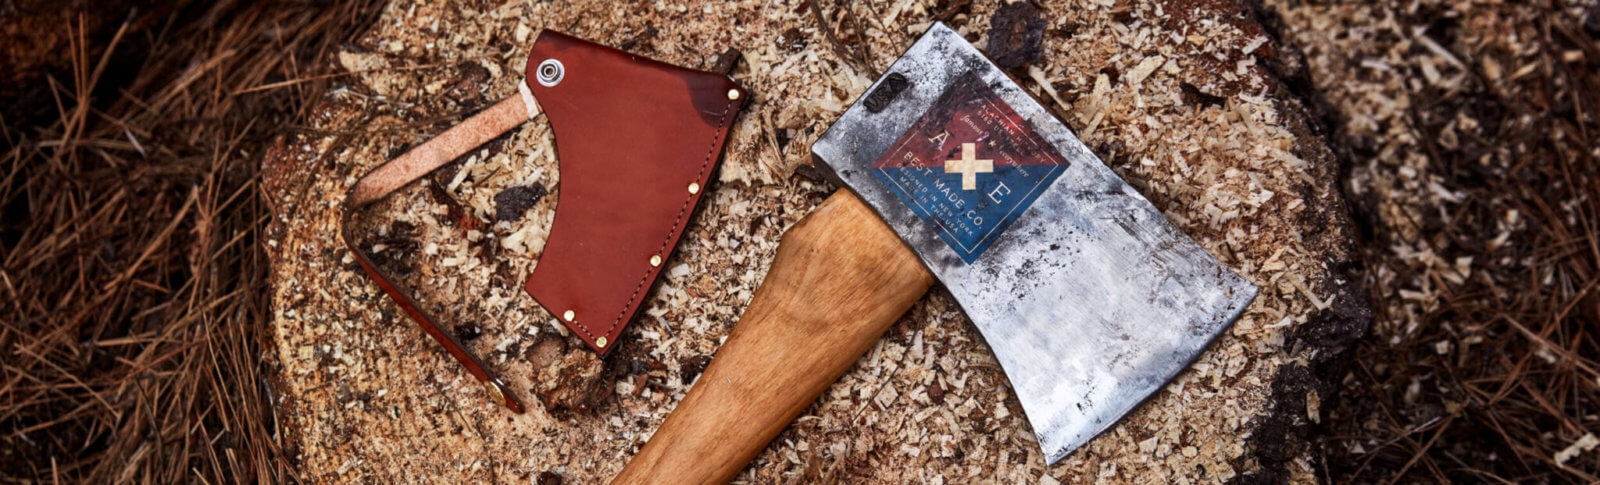 Best Made Co. uses Spree Commerce for its high-end camping gear store with shoppable catalogs